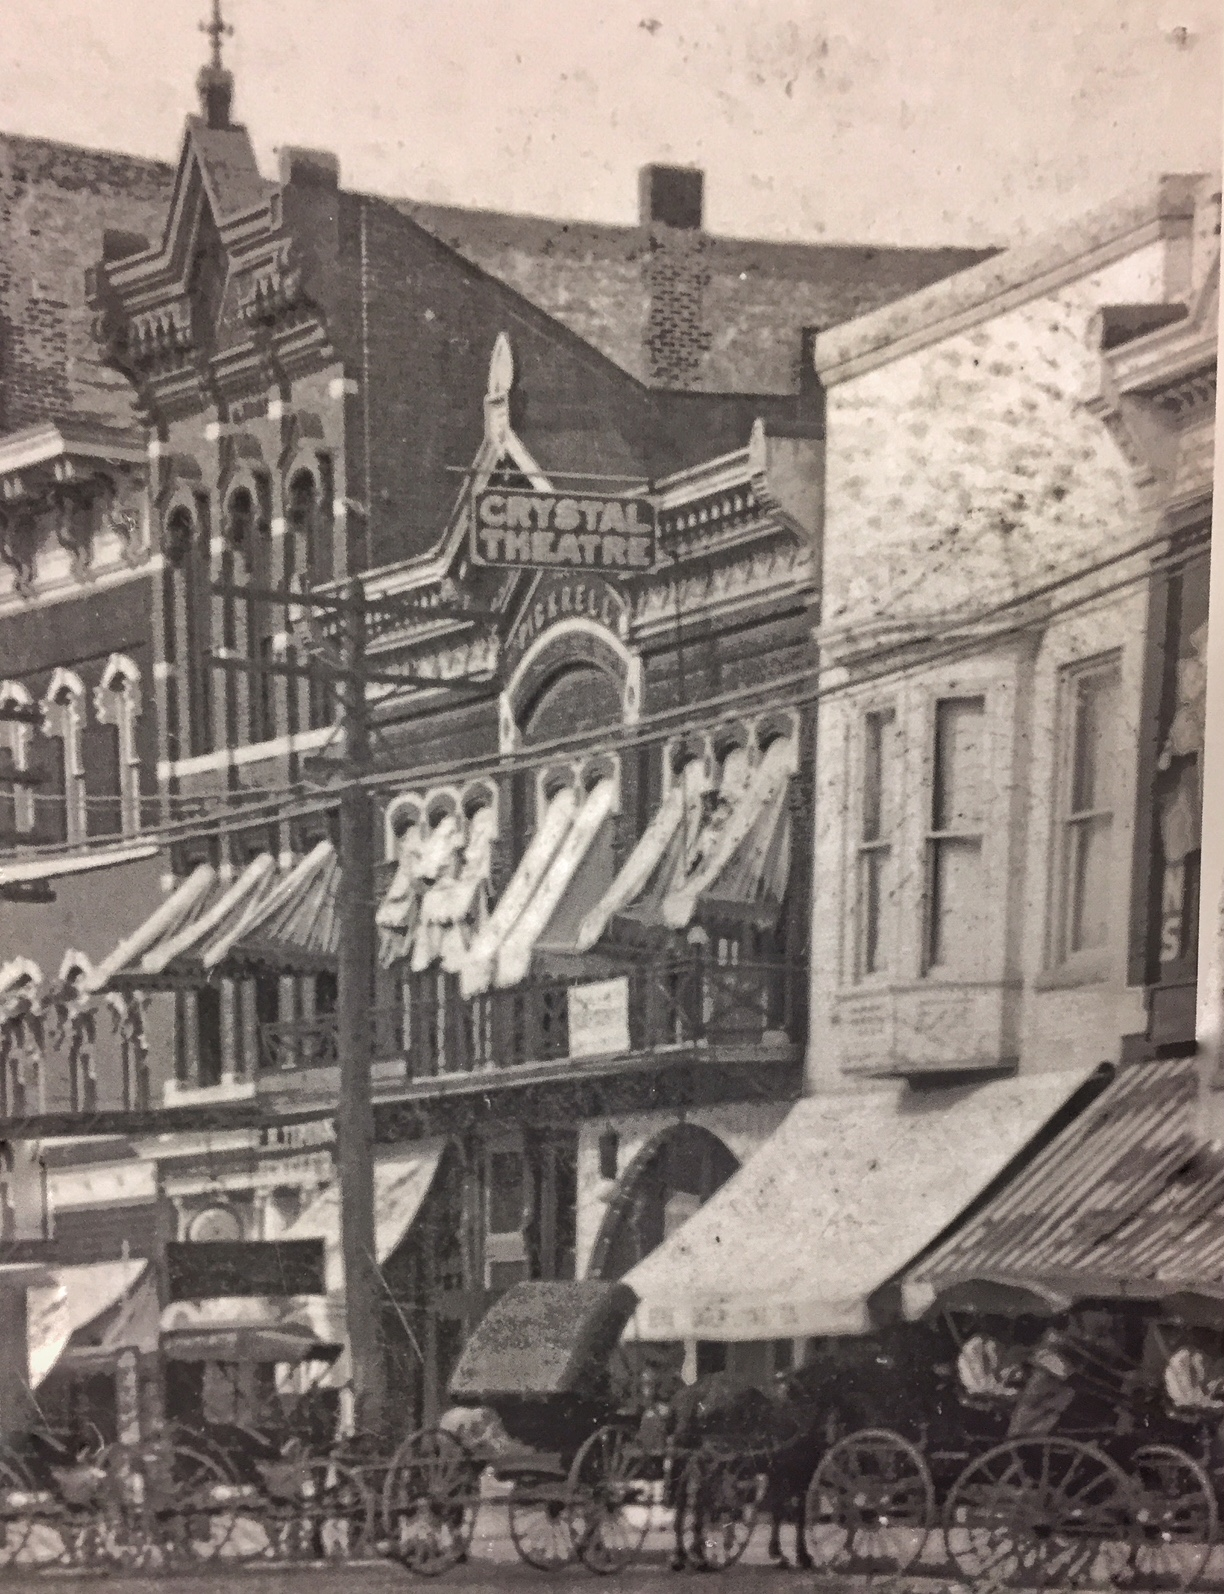 The Crystal Theatre, later to be known as the Plaza Cinema, in Ottawa, circa 1910. (Courtesy of the Franklin County Historical Society)